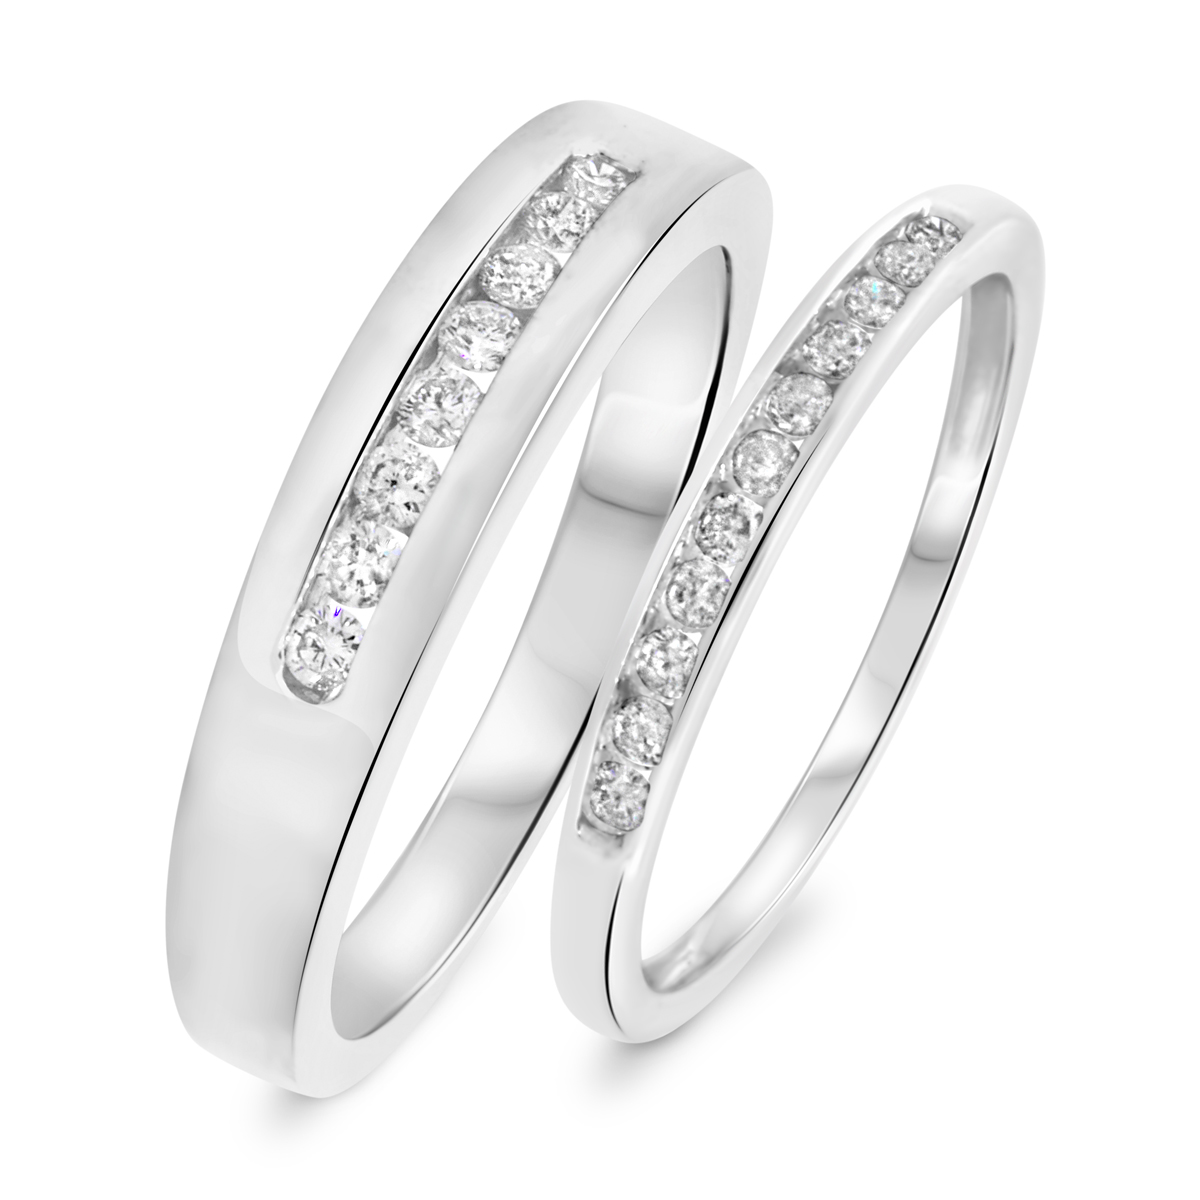 1 3 8 carat t w round cut diamond his and hers wedding